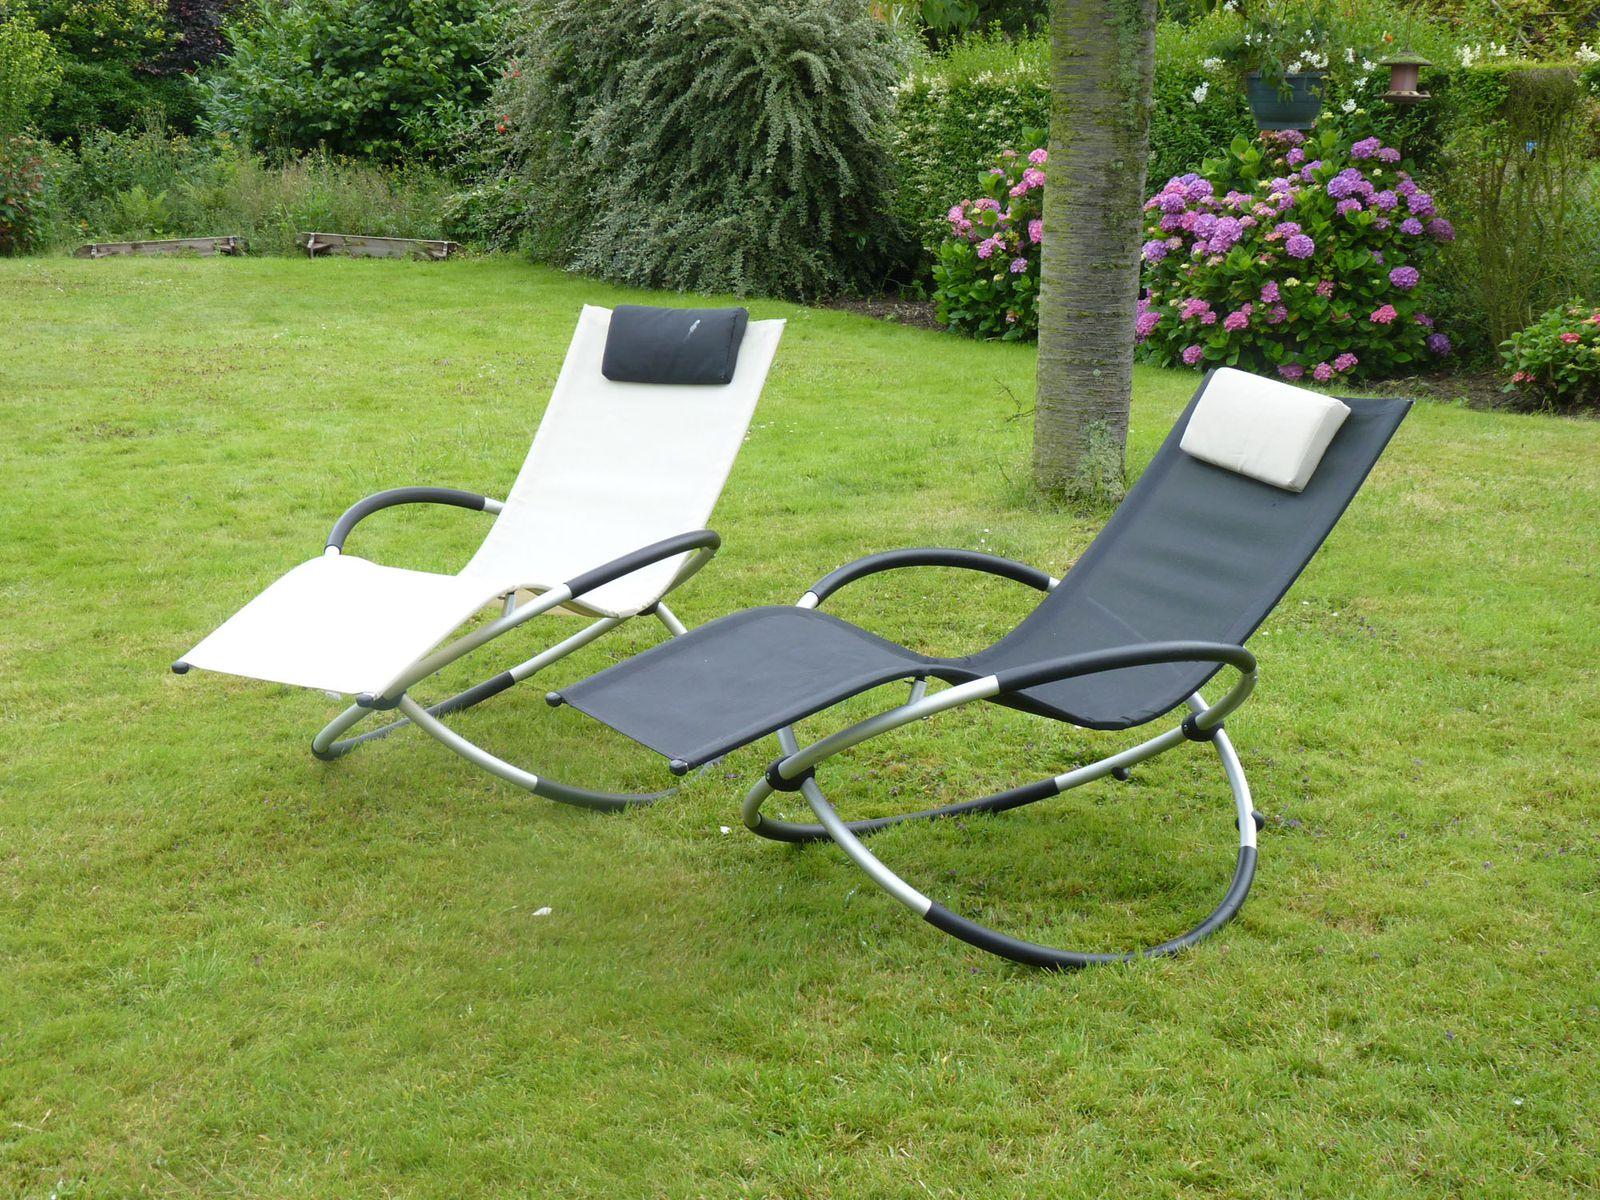 Jardin fauteuil relax design confortable qu 39 un transat - Rocking chair confortable ...